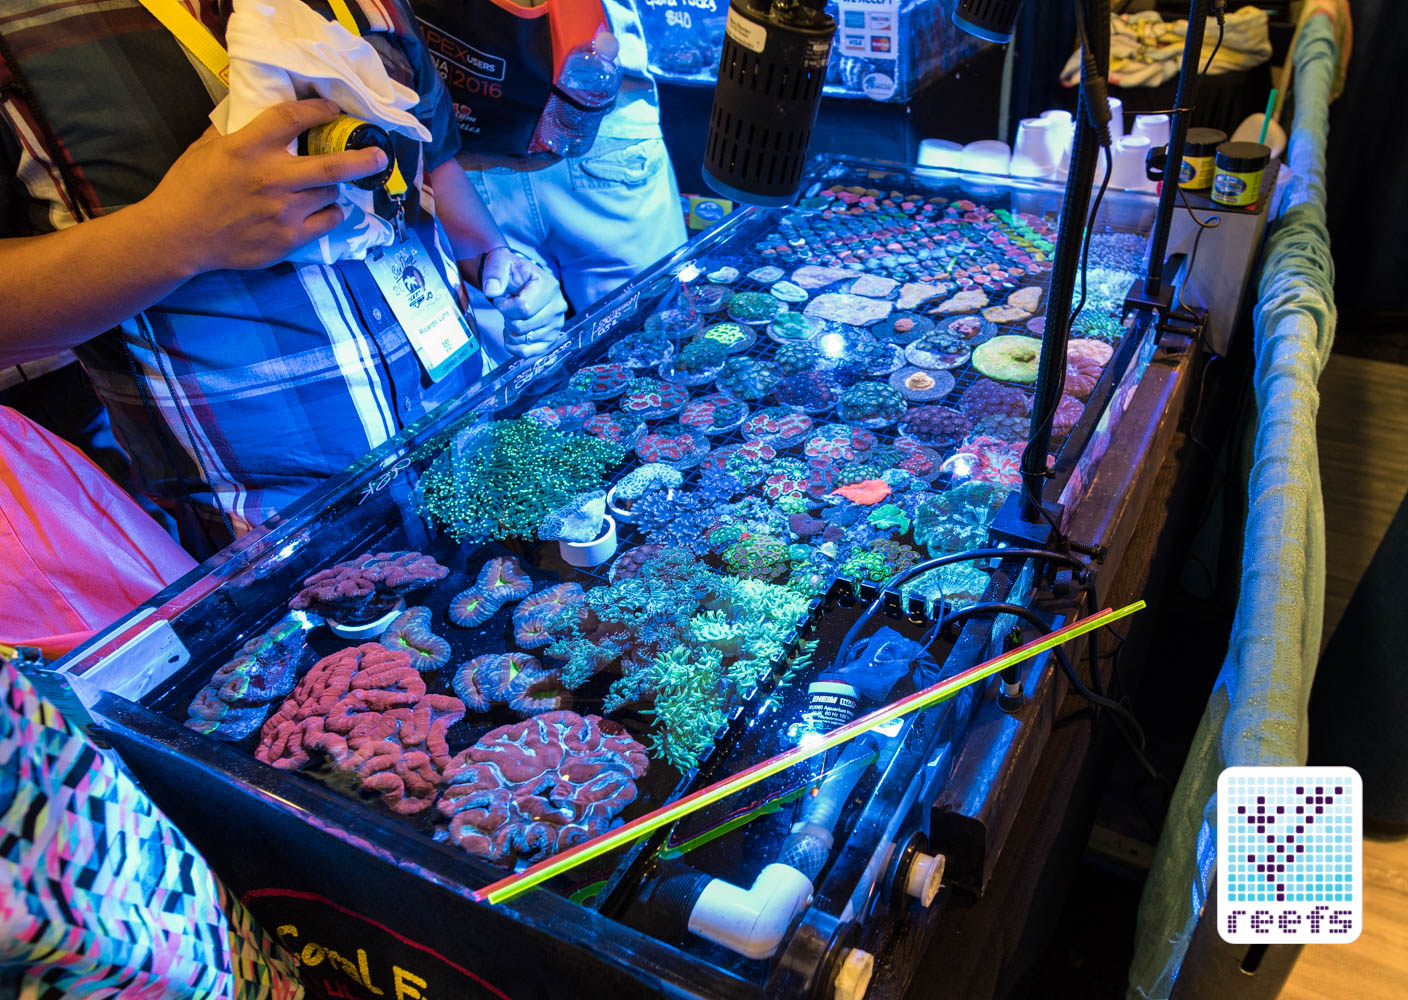 Beautiful corals dominated local retailers' booths